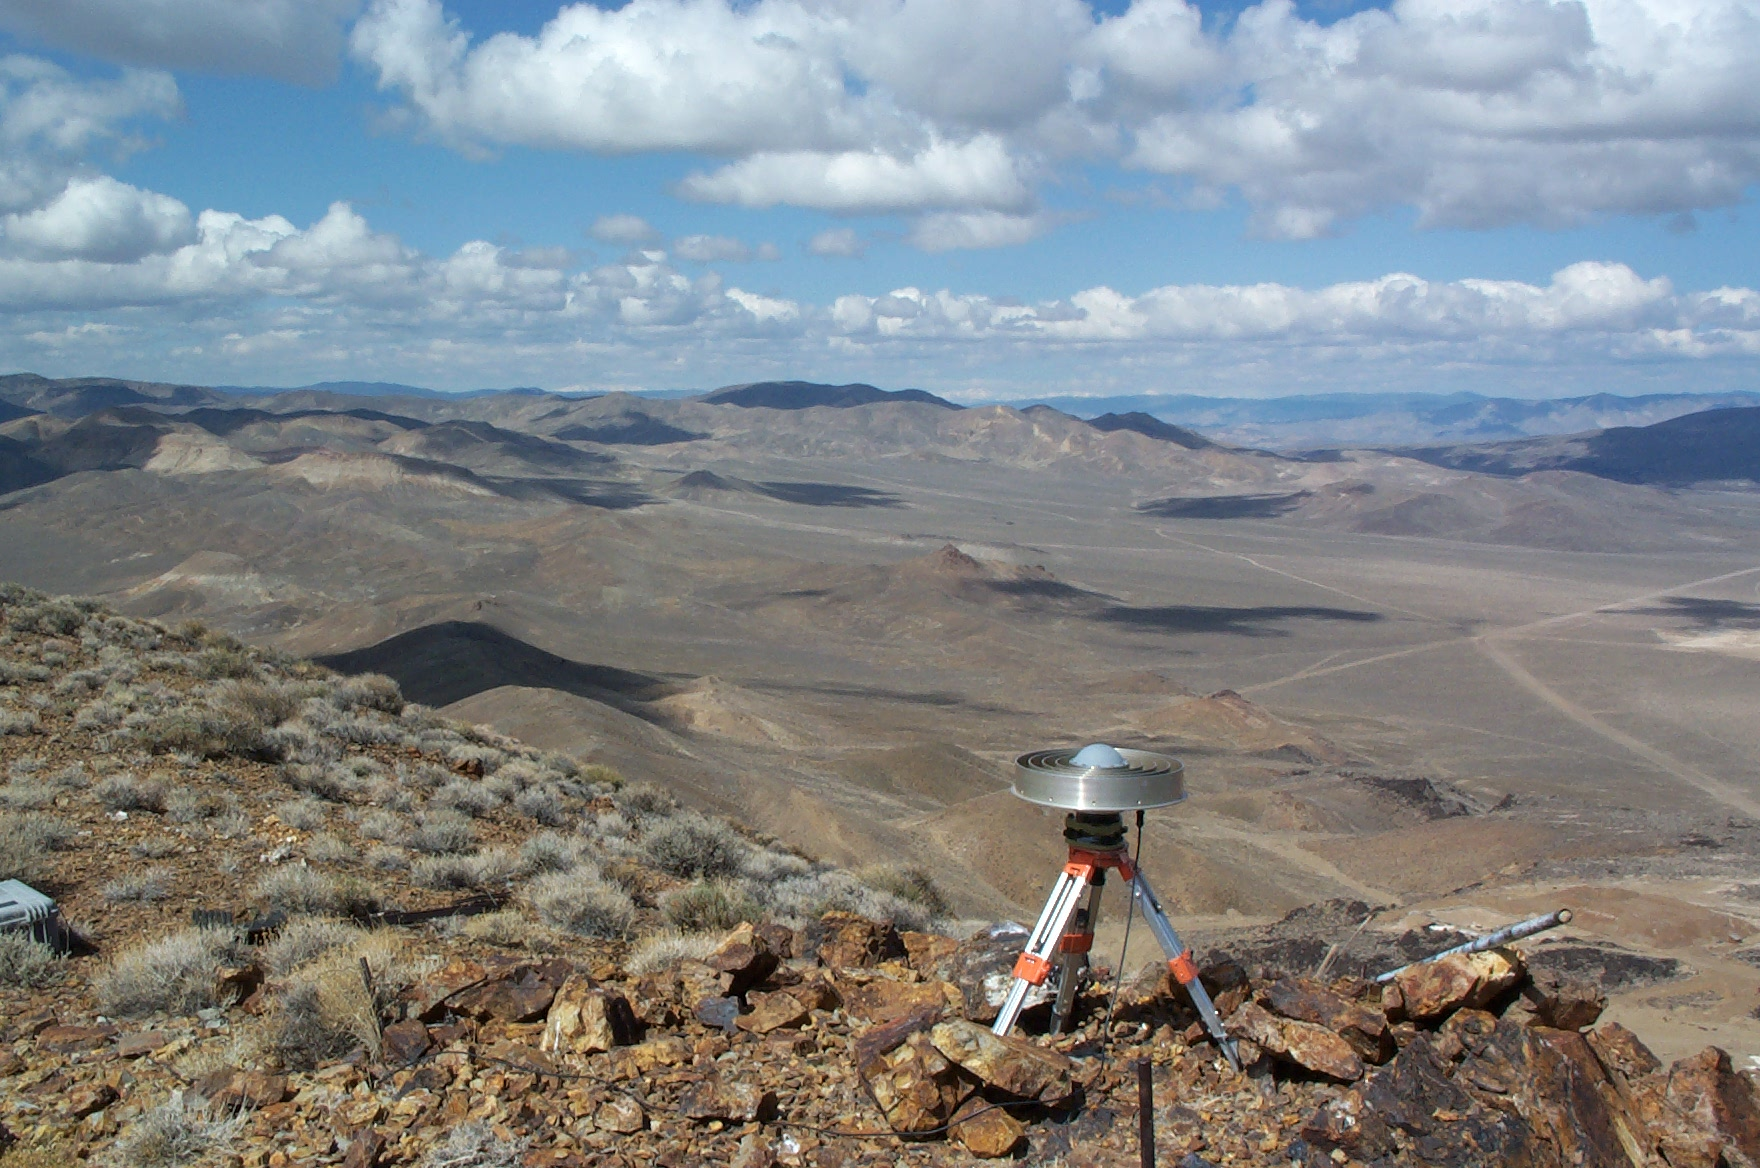 GPS Station CAND. Located at the Candaleria silver mine near Mina, Nevada.